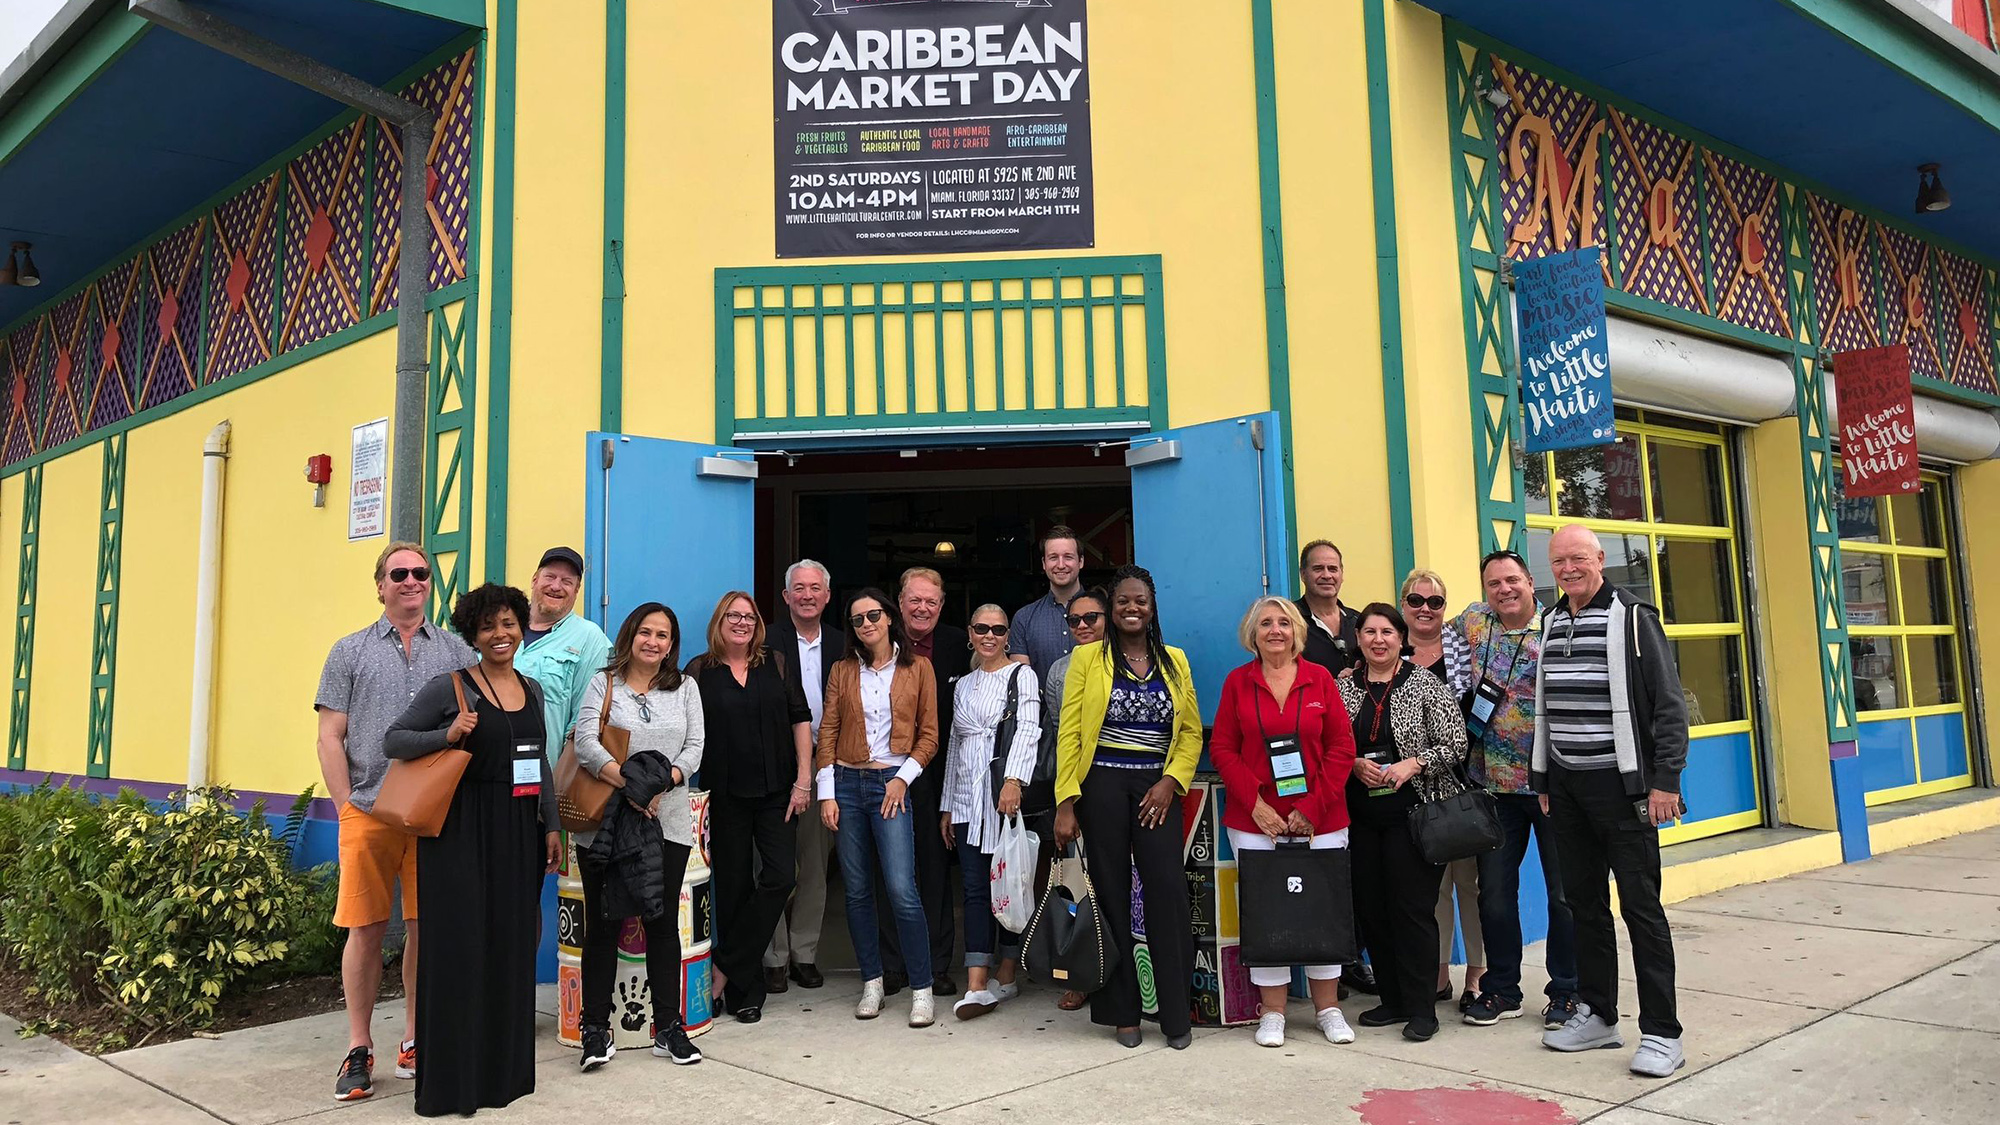 A group of Black Cultural Heritage Tour participants at the Caribbean Marketplace in the Little Haiti neighborhood of Miami.